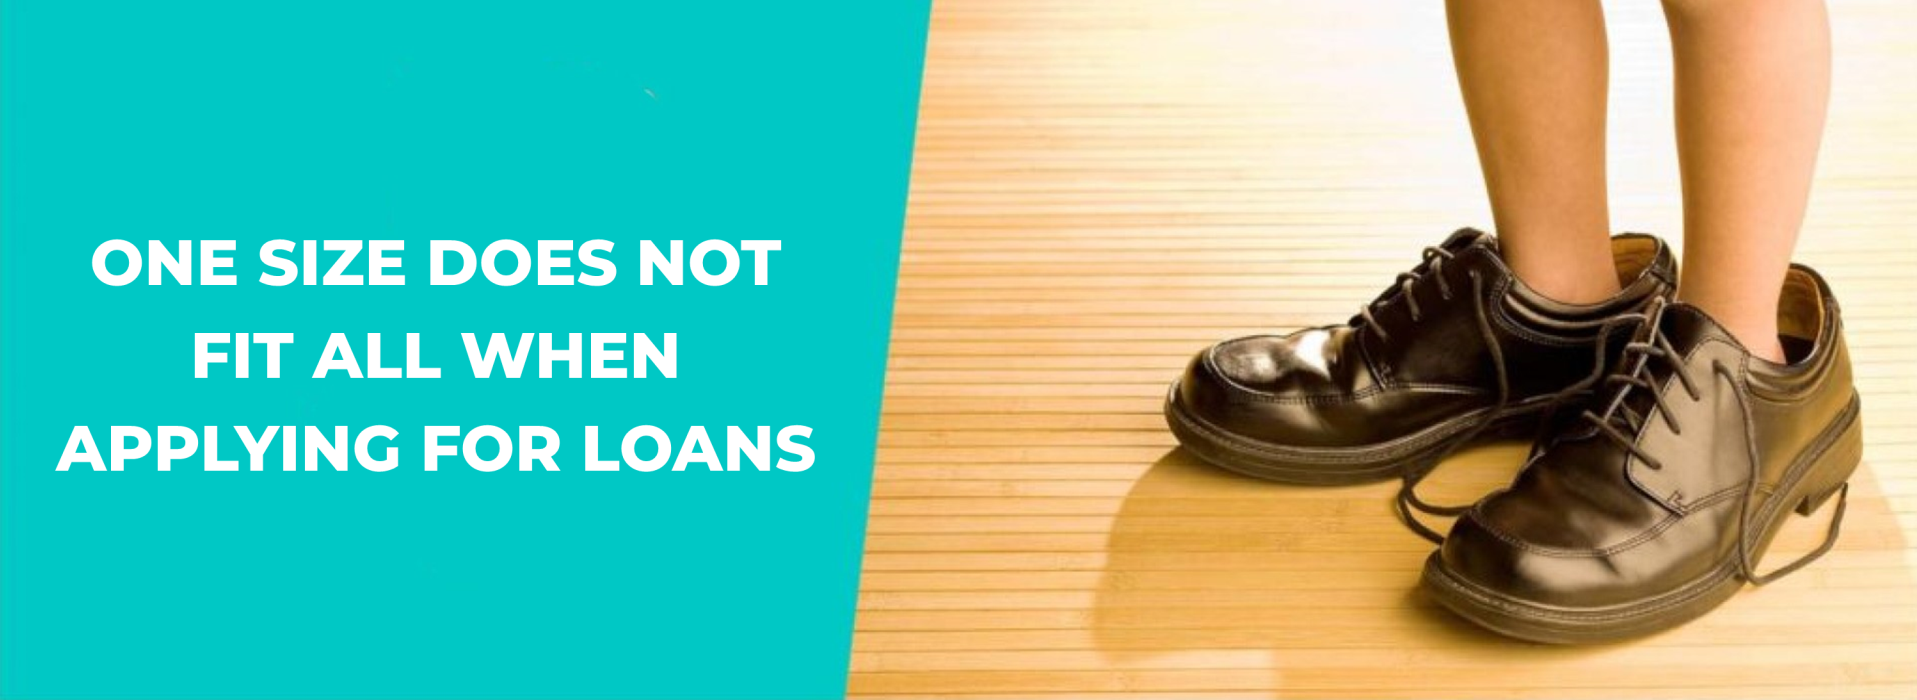 One size does not fit all on loans.